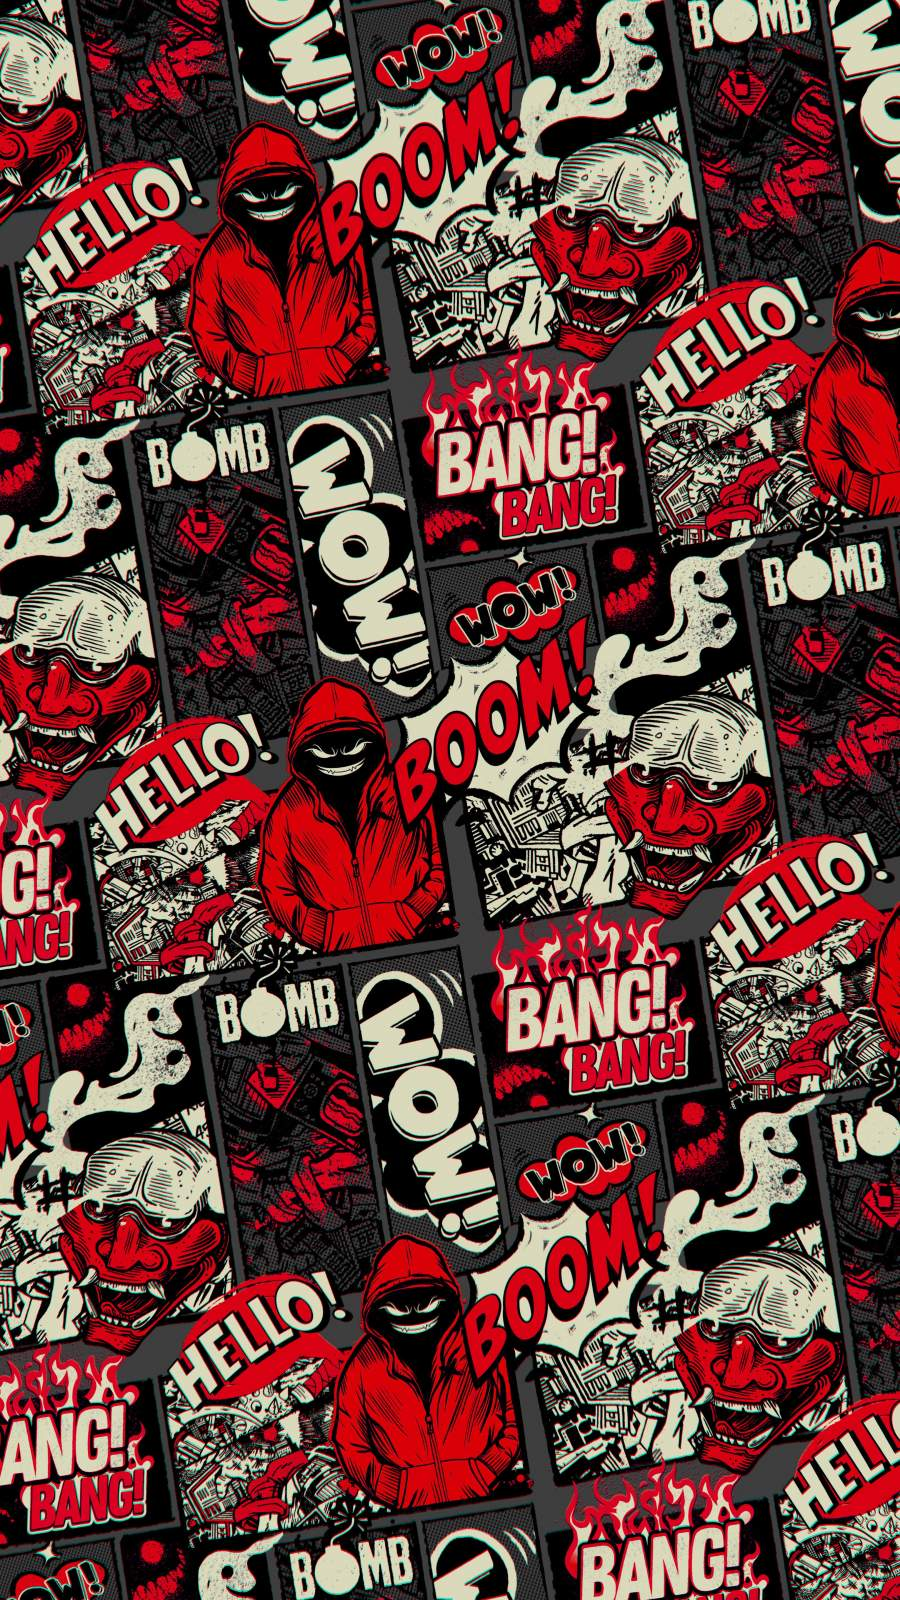 BANG BANG iPhone Wallpaper